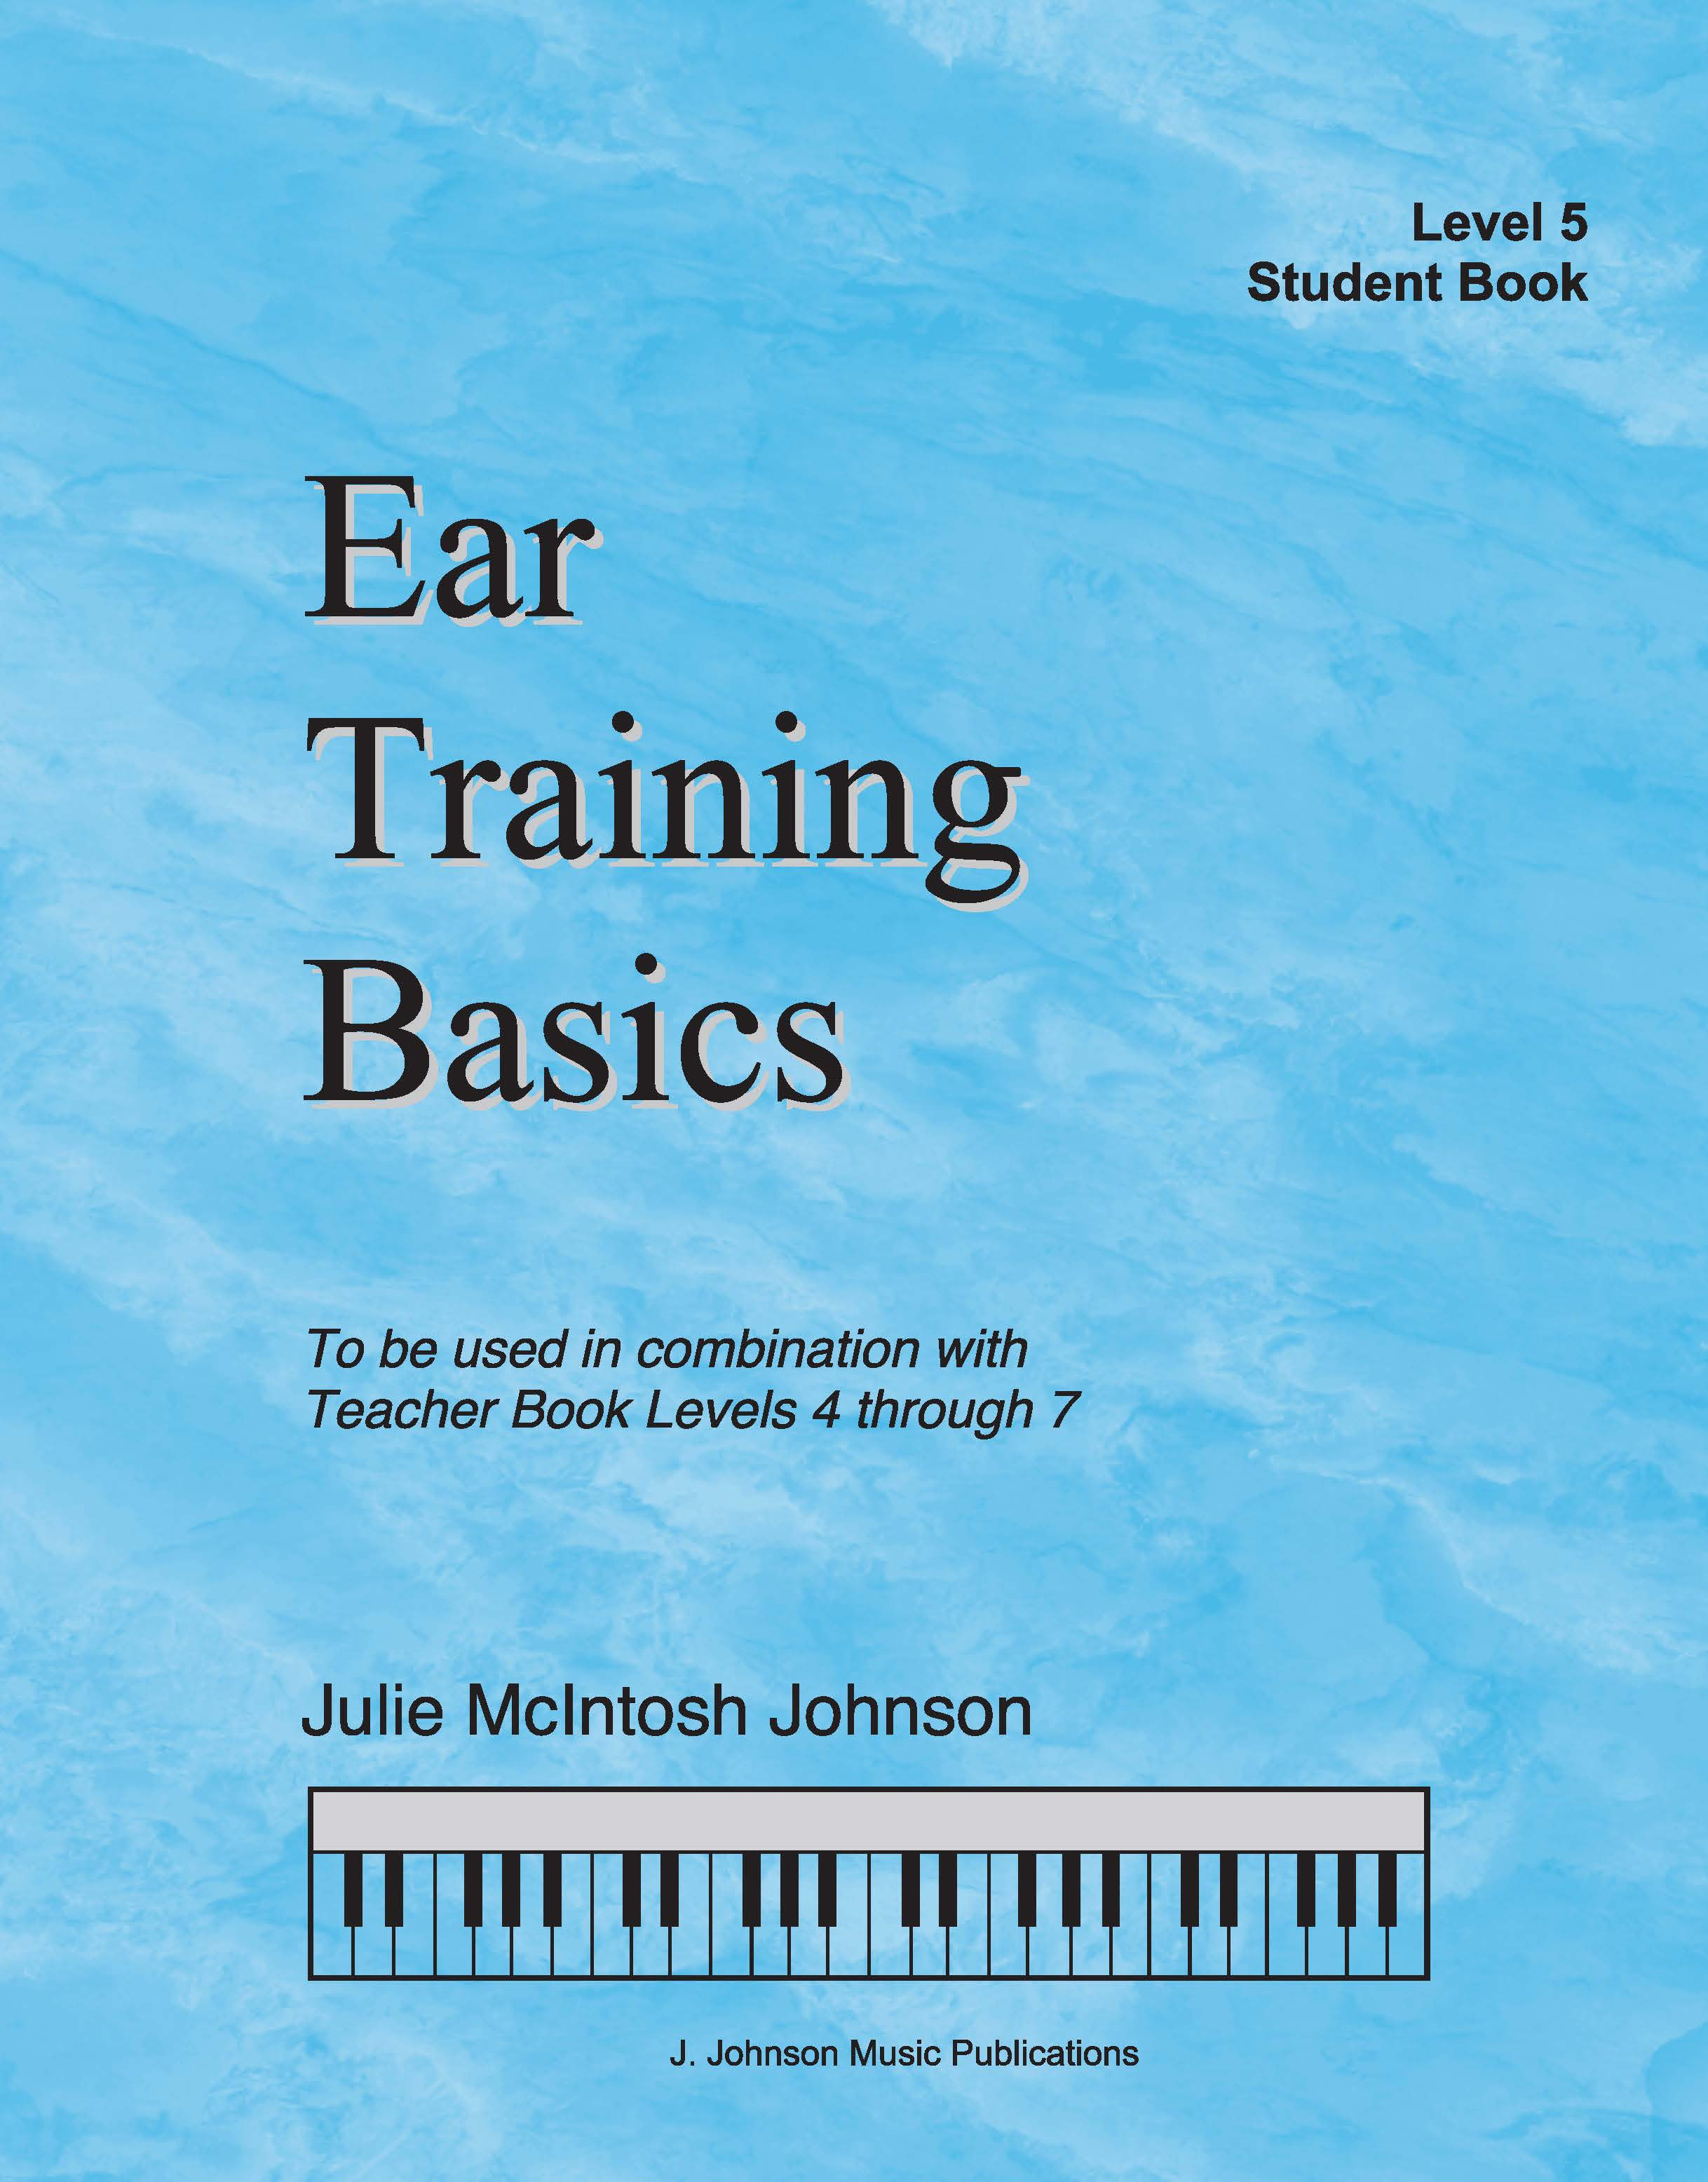 Ear Training Basics Level 5